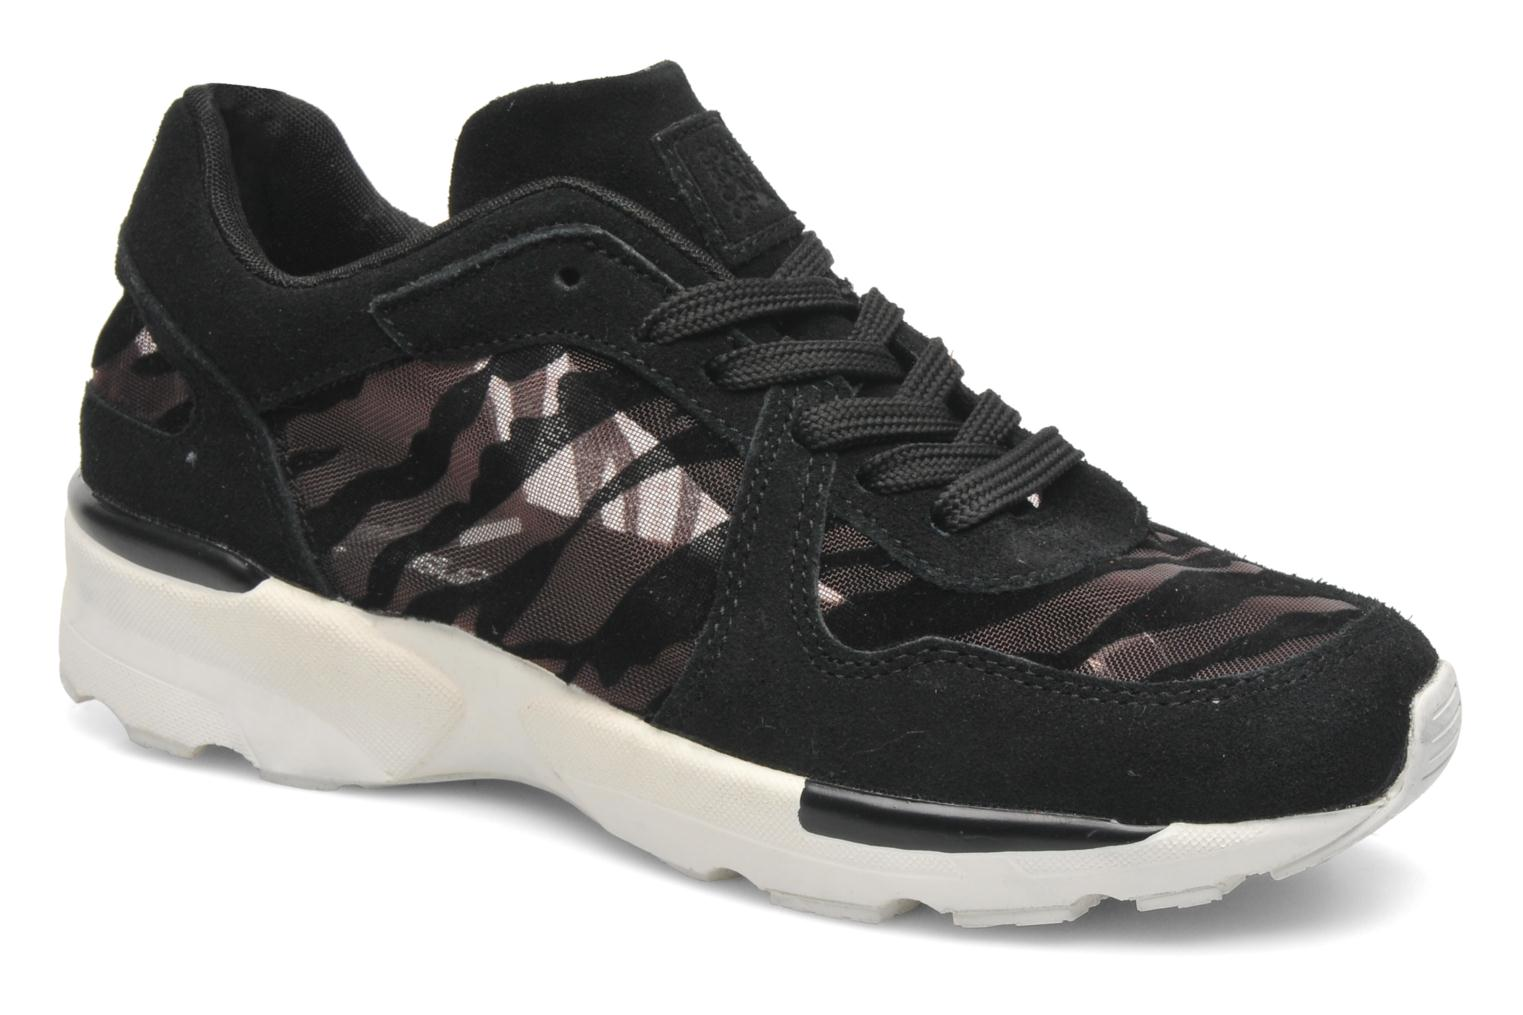 Sneakers Tao by Colors of California